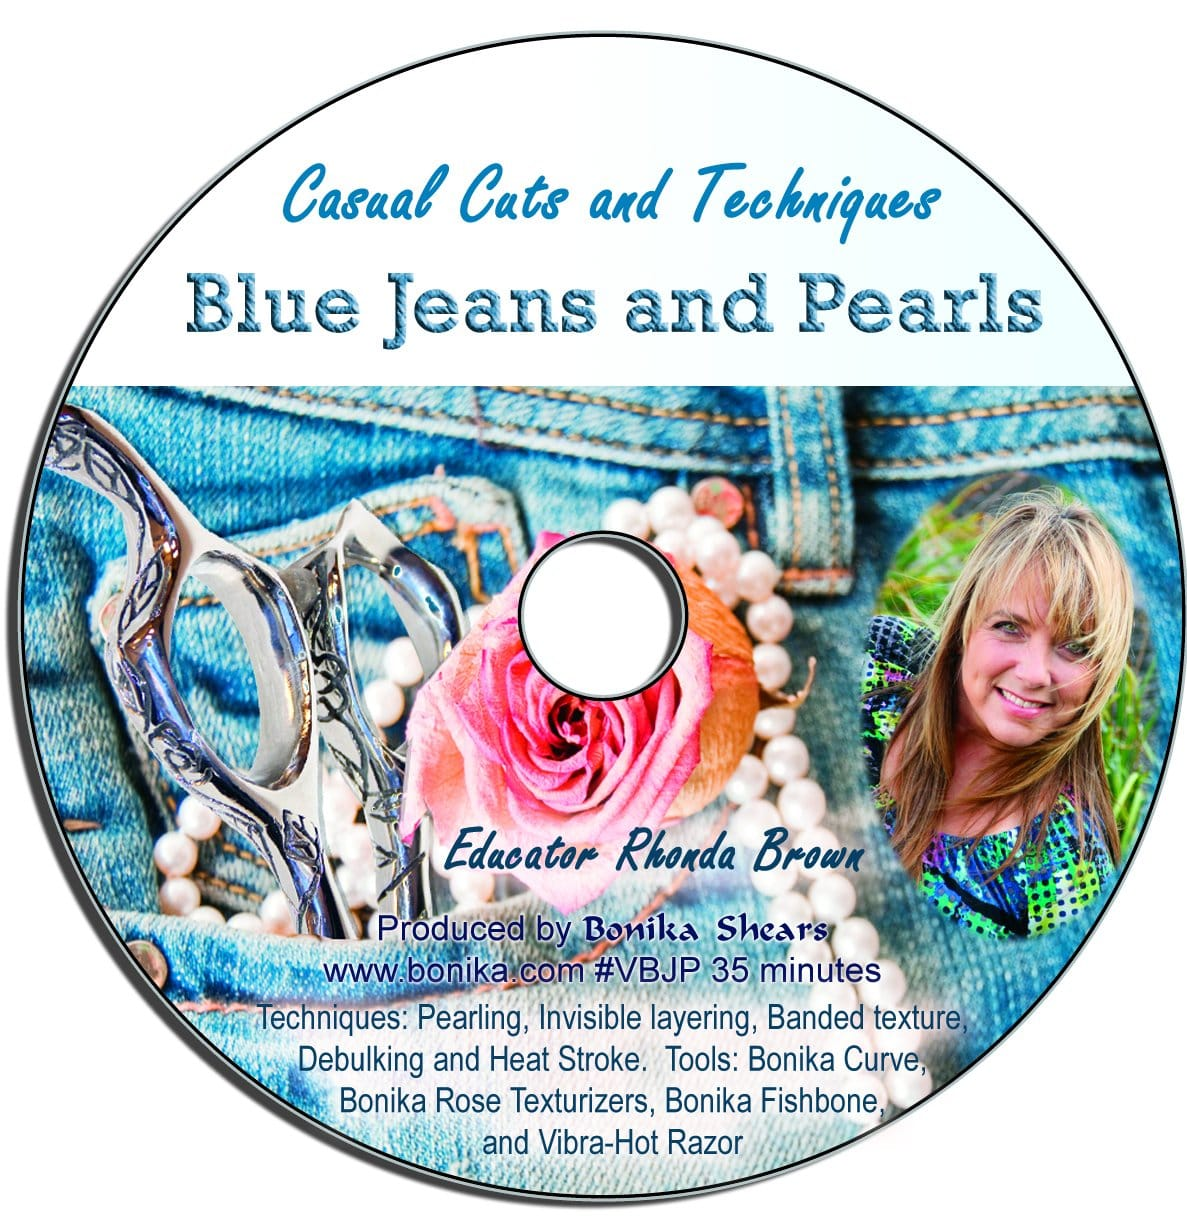 Blue Jeans and Pearls Casual Cuts Video - Bonika Shears